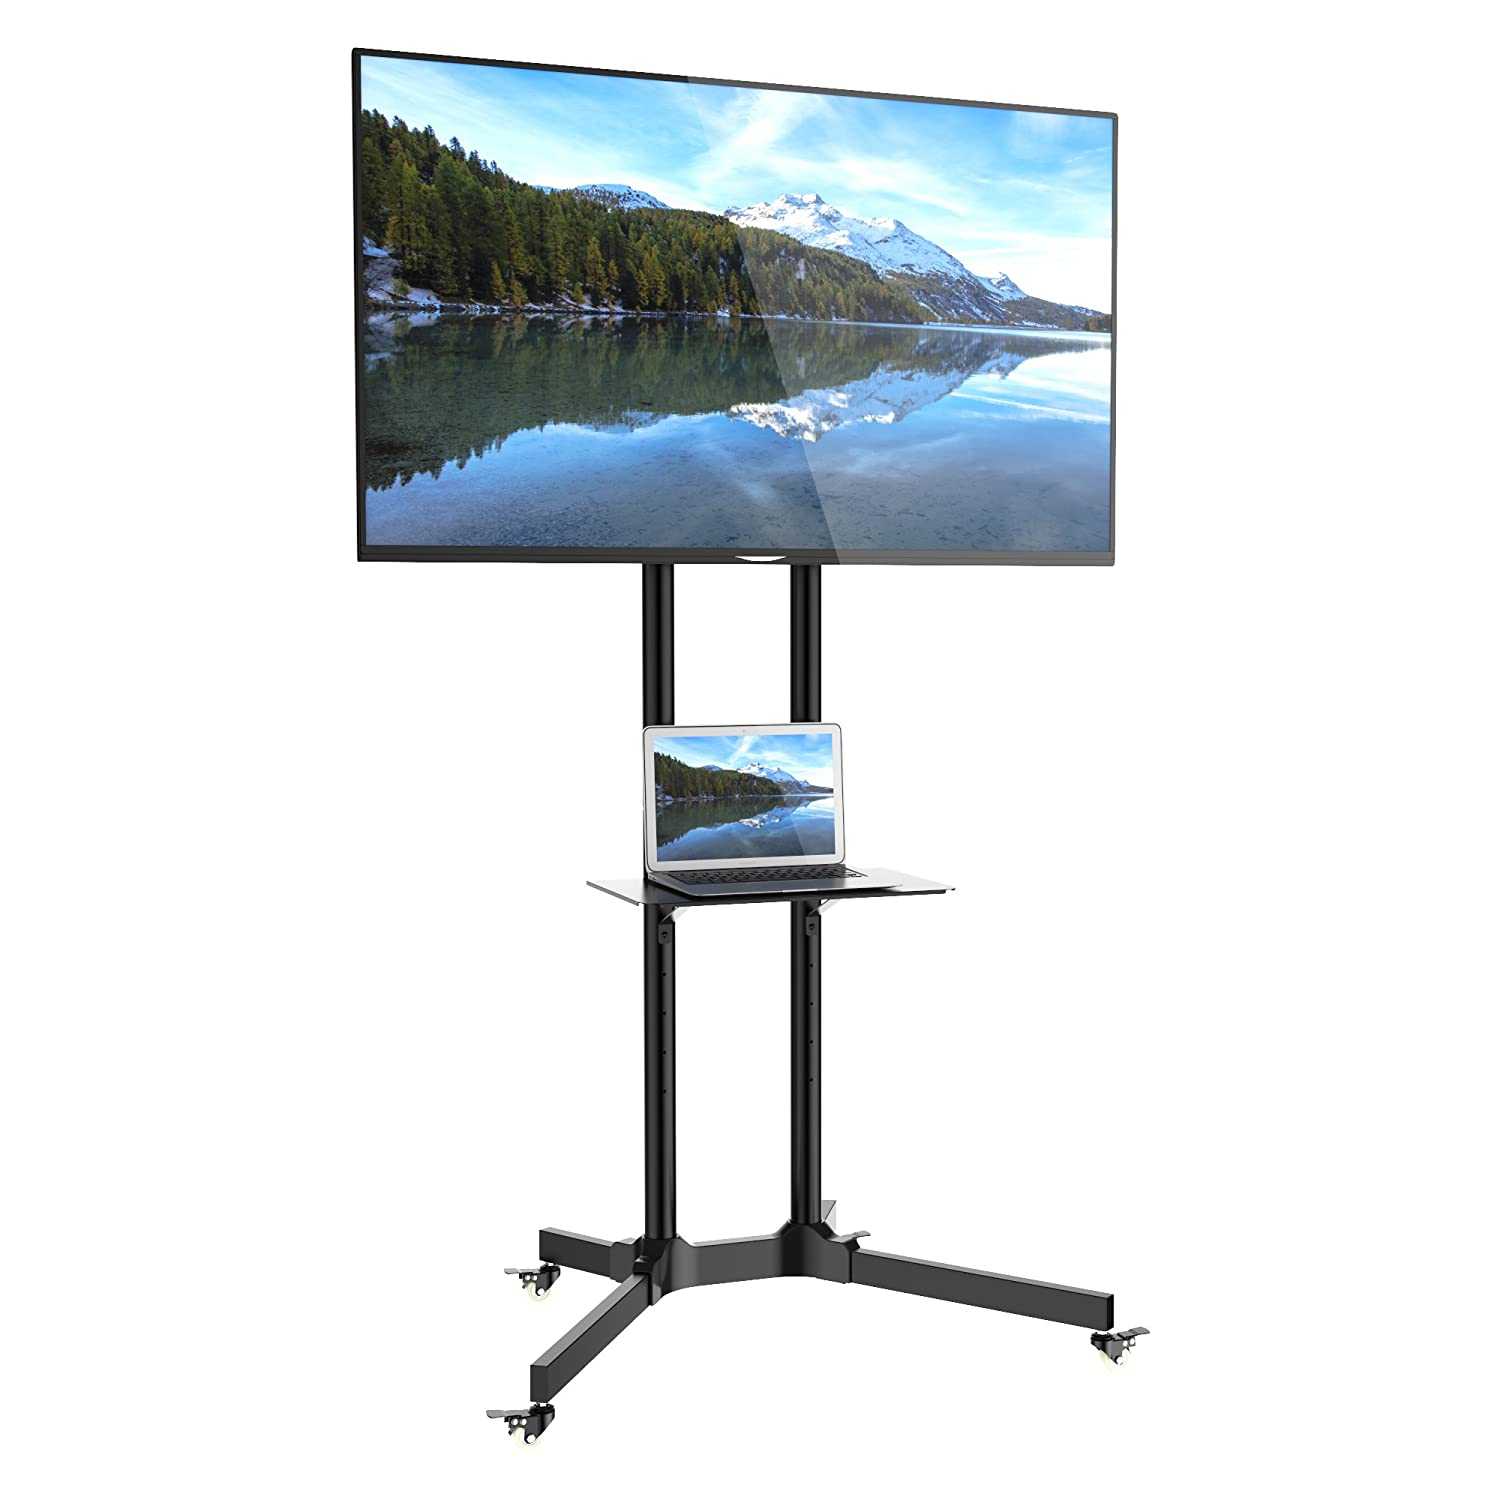 e51bd93bad94 1home Mobile TV Trolley Stand Mount Cart Exhibition: Amazon.co.uk:  Electronics